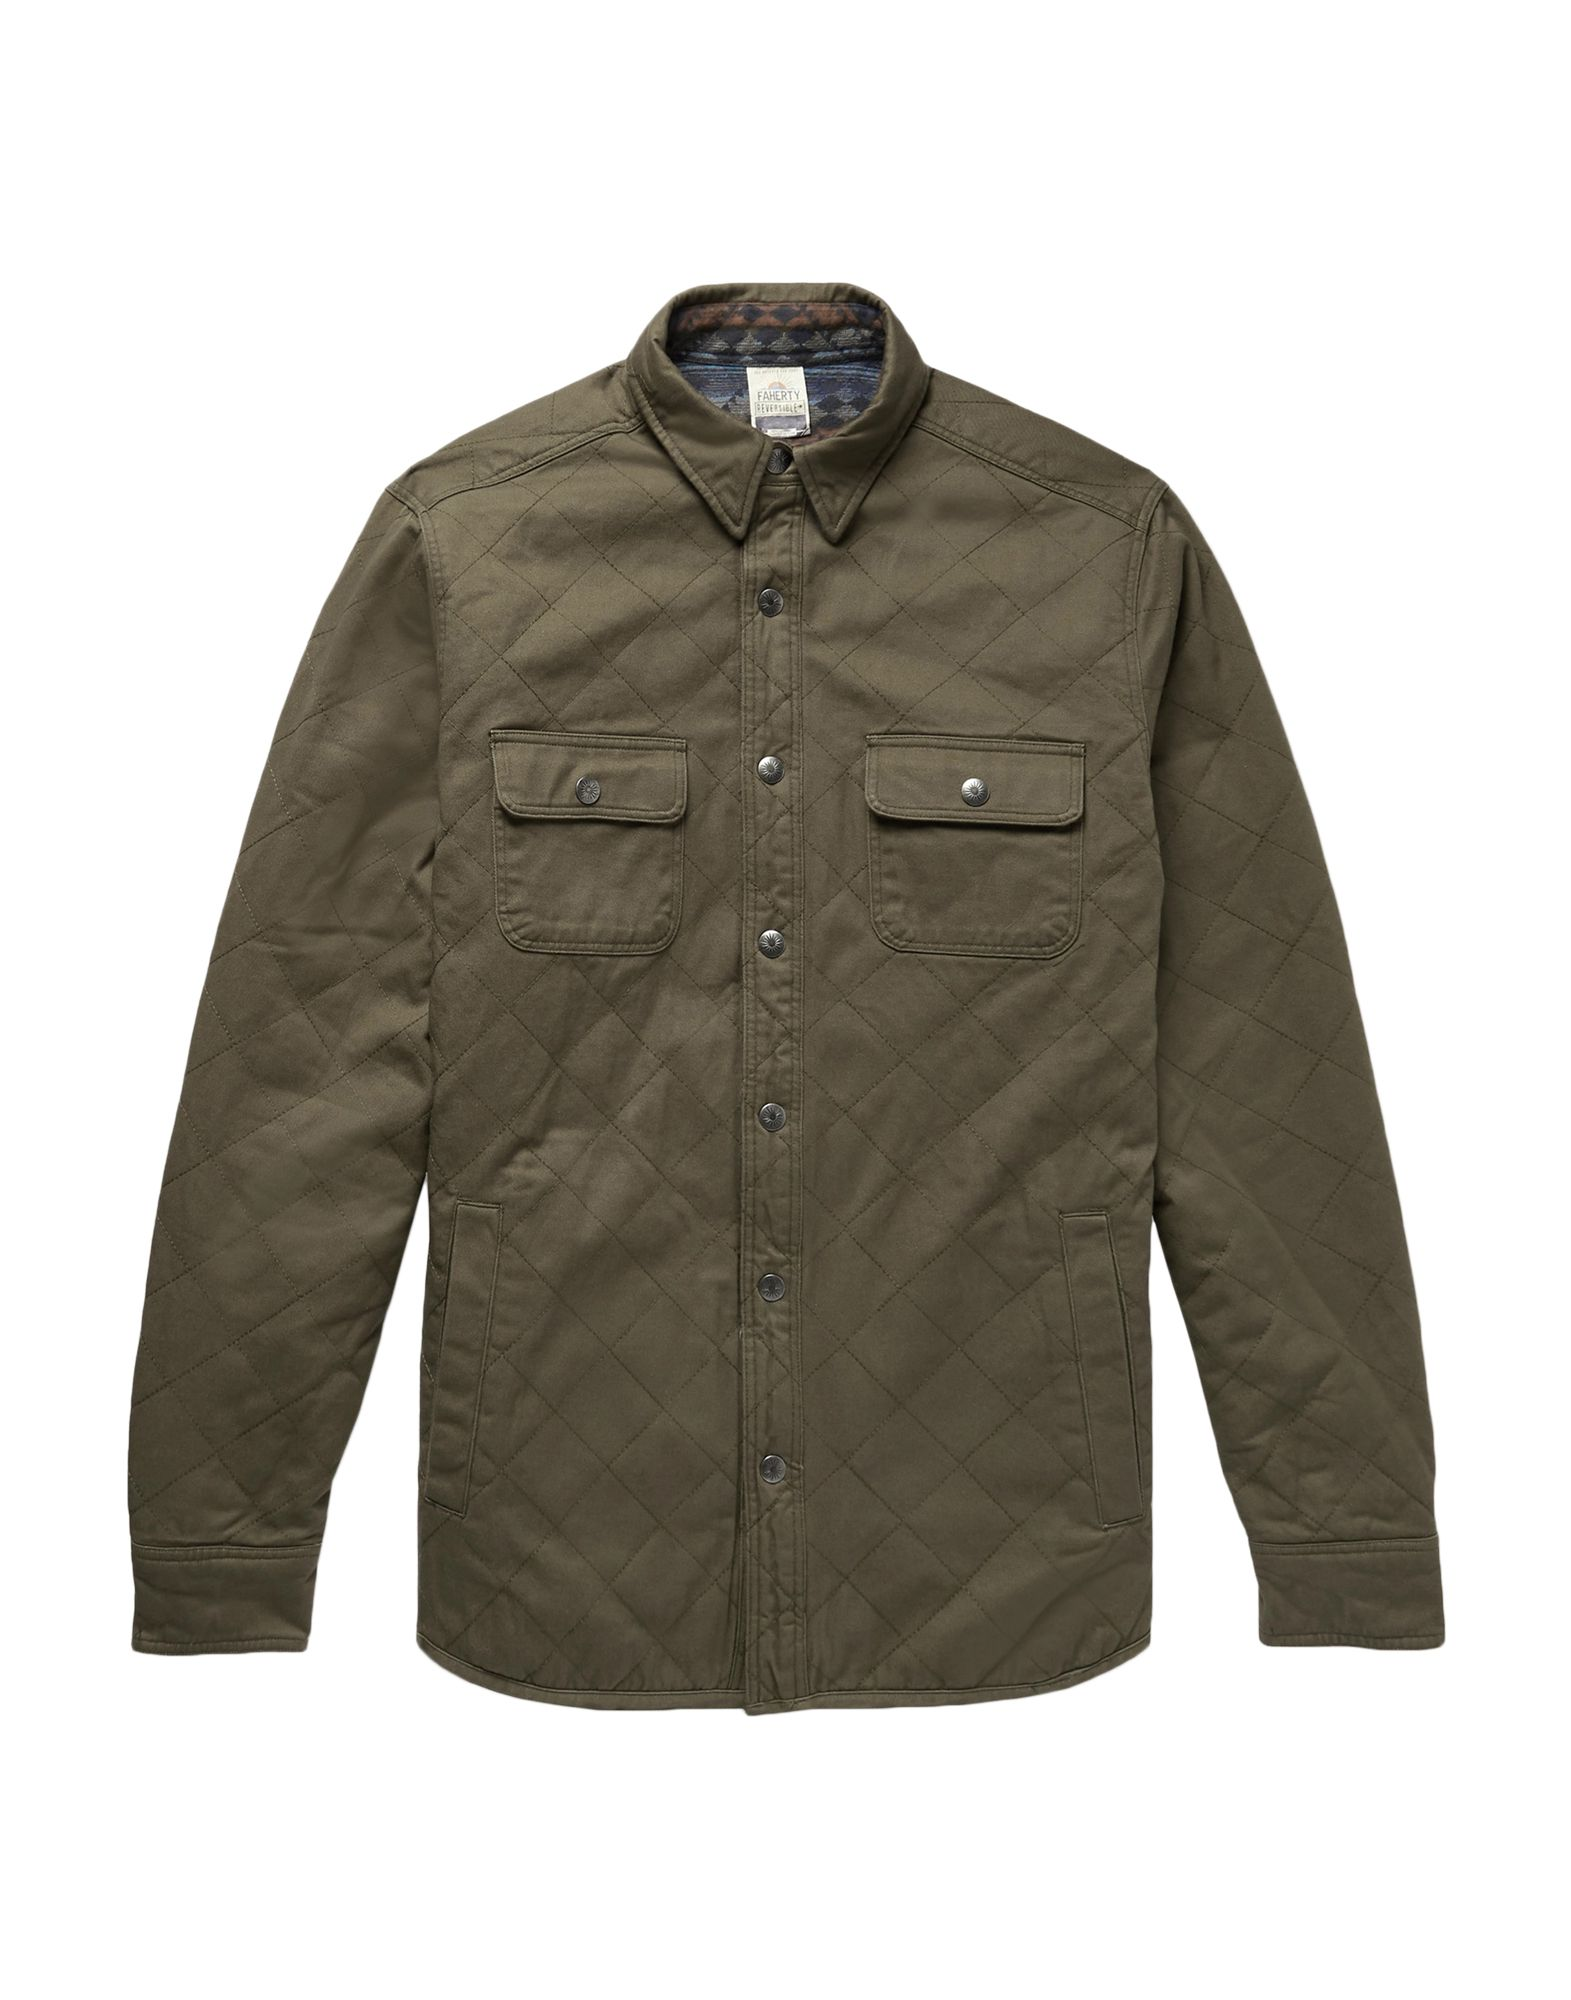 FAHERTY Jackets. twill, no appliqués, basic solid color, single-breasted, snap button fastening, classic neckline, multipockets, long sleeves, internal padding. 100% Cotton